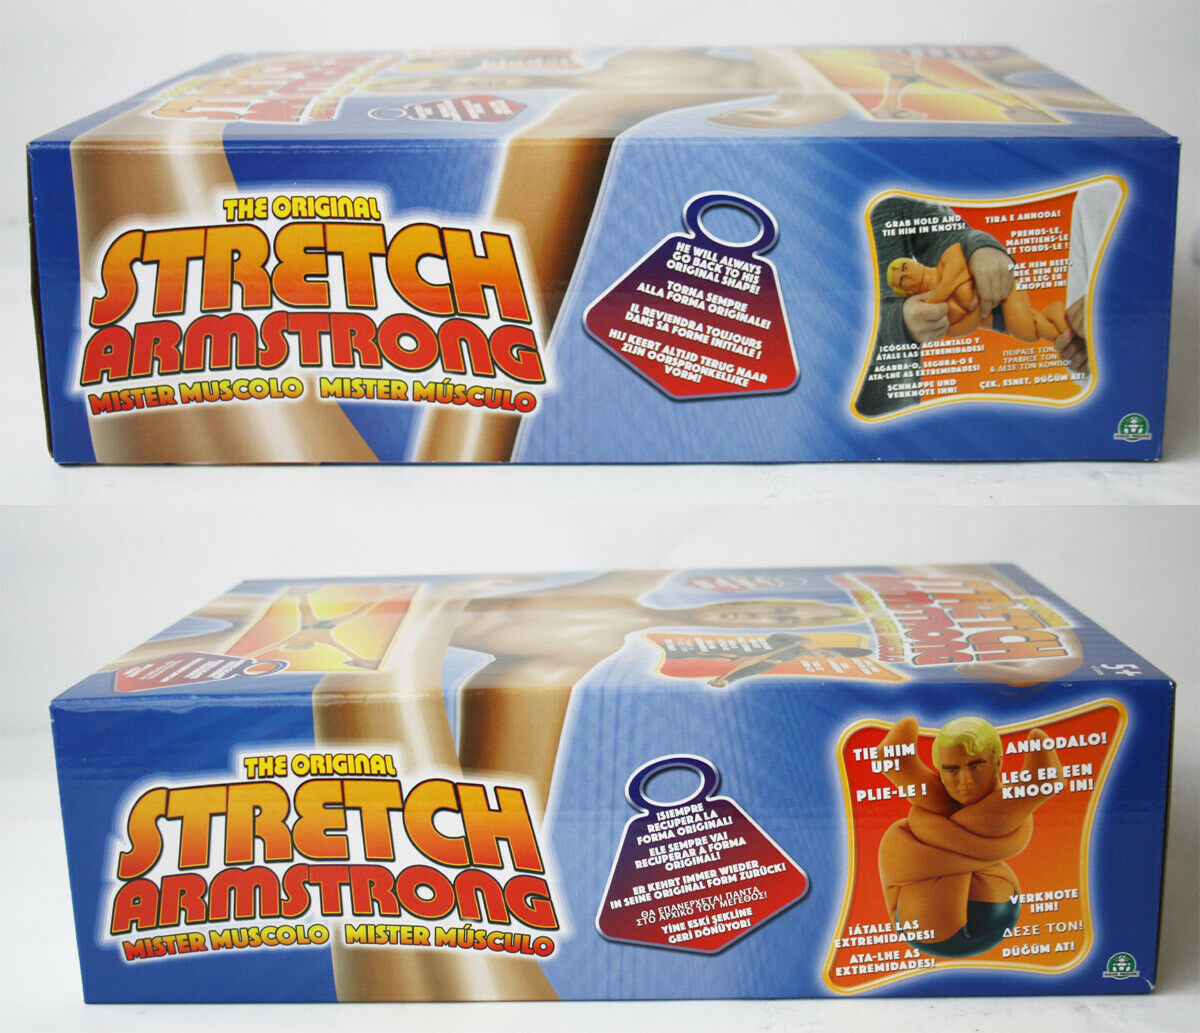 THE ORIGINAL STRETCH ARMSTRONG ARMSTRONG ARMSTRONG FIGURE HASBRO 2017 NEW SEALED 1103d4